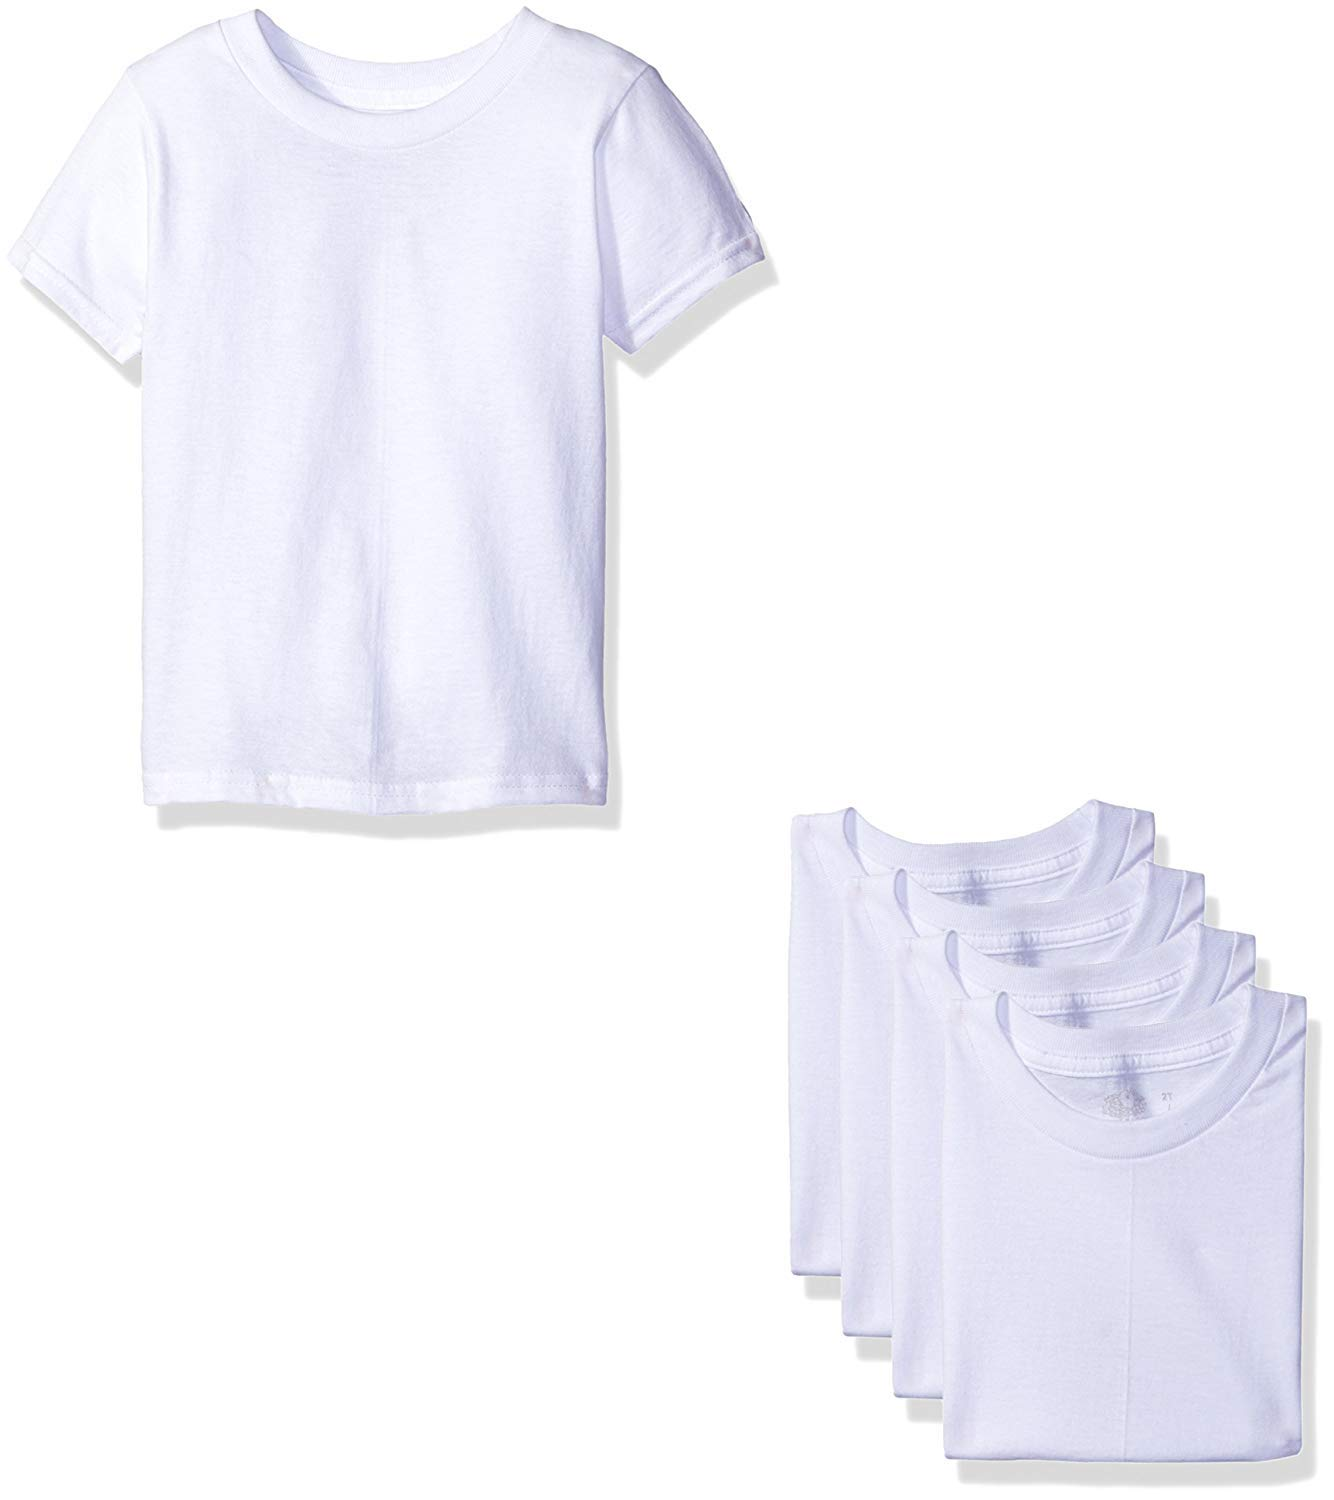 Fruit of The Loom Boys' Cotton White T Shirt (4T/5T(34-38'') lbs, Toddler - White Ice (5 Pack))